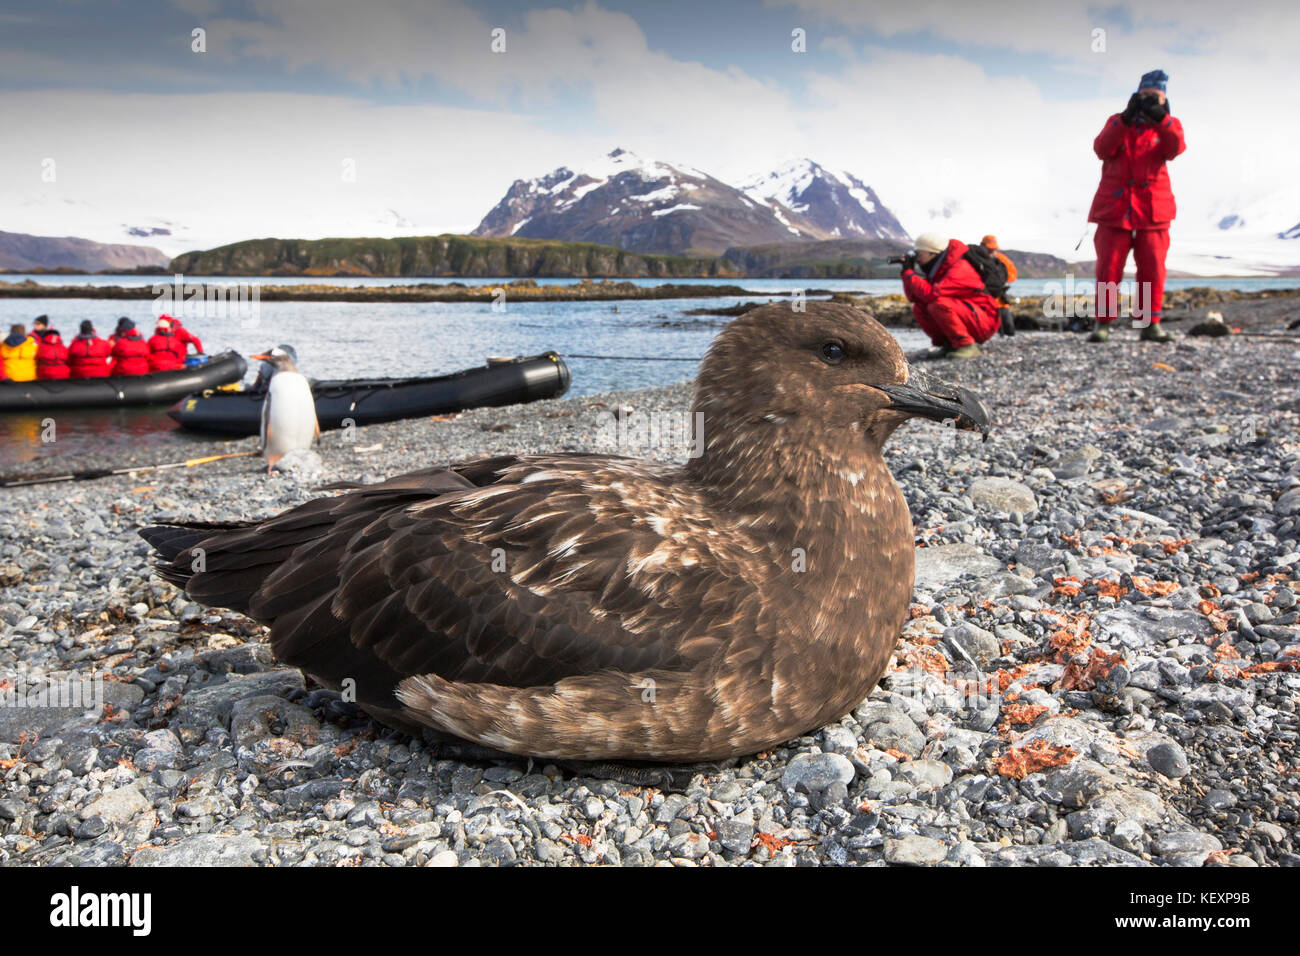 A Brown Skua, Stercorarius antarcticus on the beach on Prion Island, South Georgia, Southern Ocean. - Stock Image